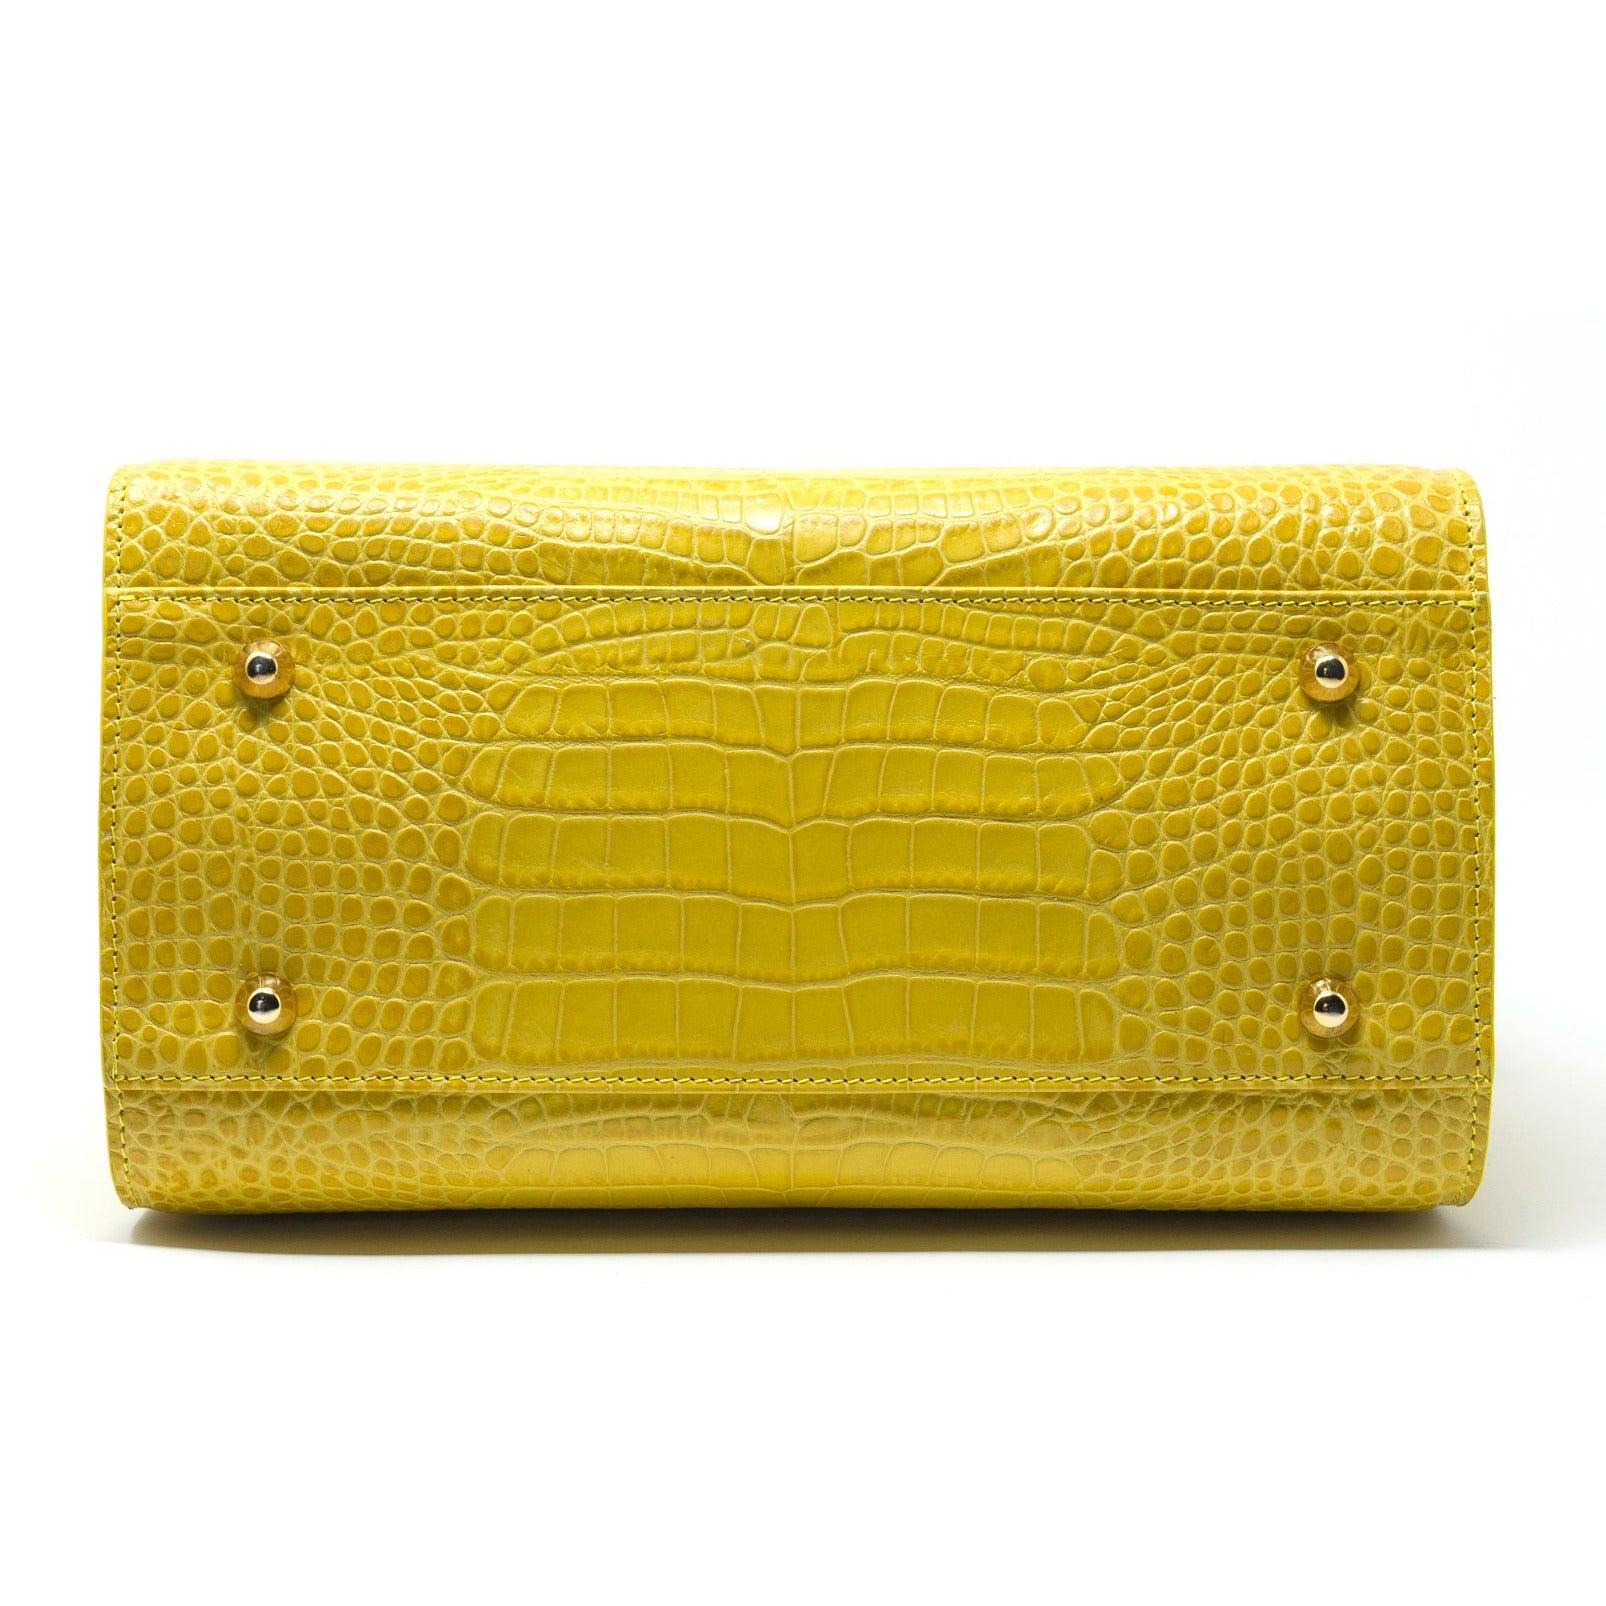 JT338 5415 Top Handle Bag Printed Crocodile - New Fall Winter 2019-2020 Collection